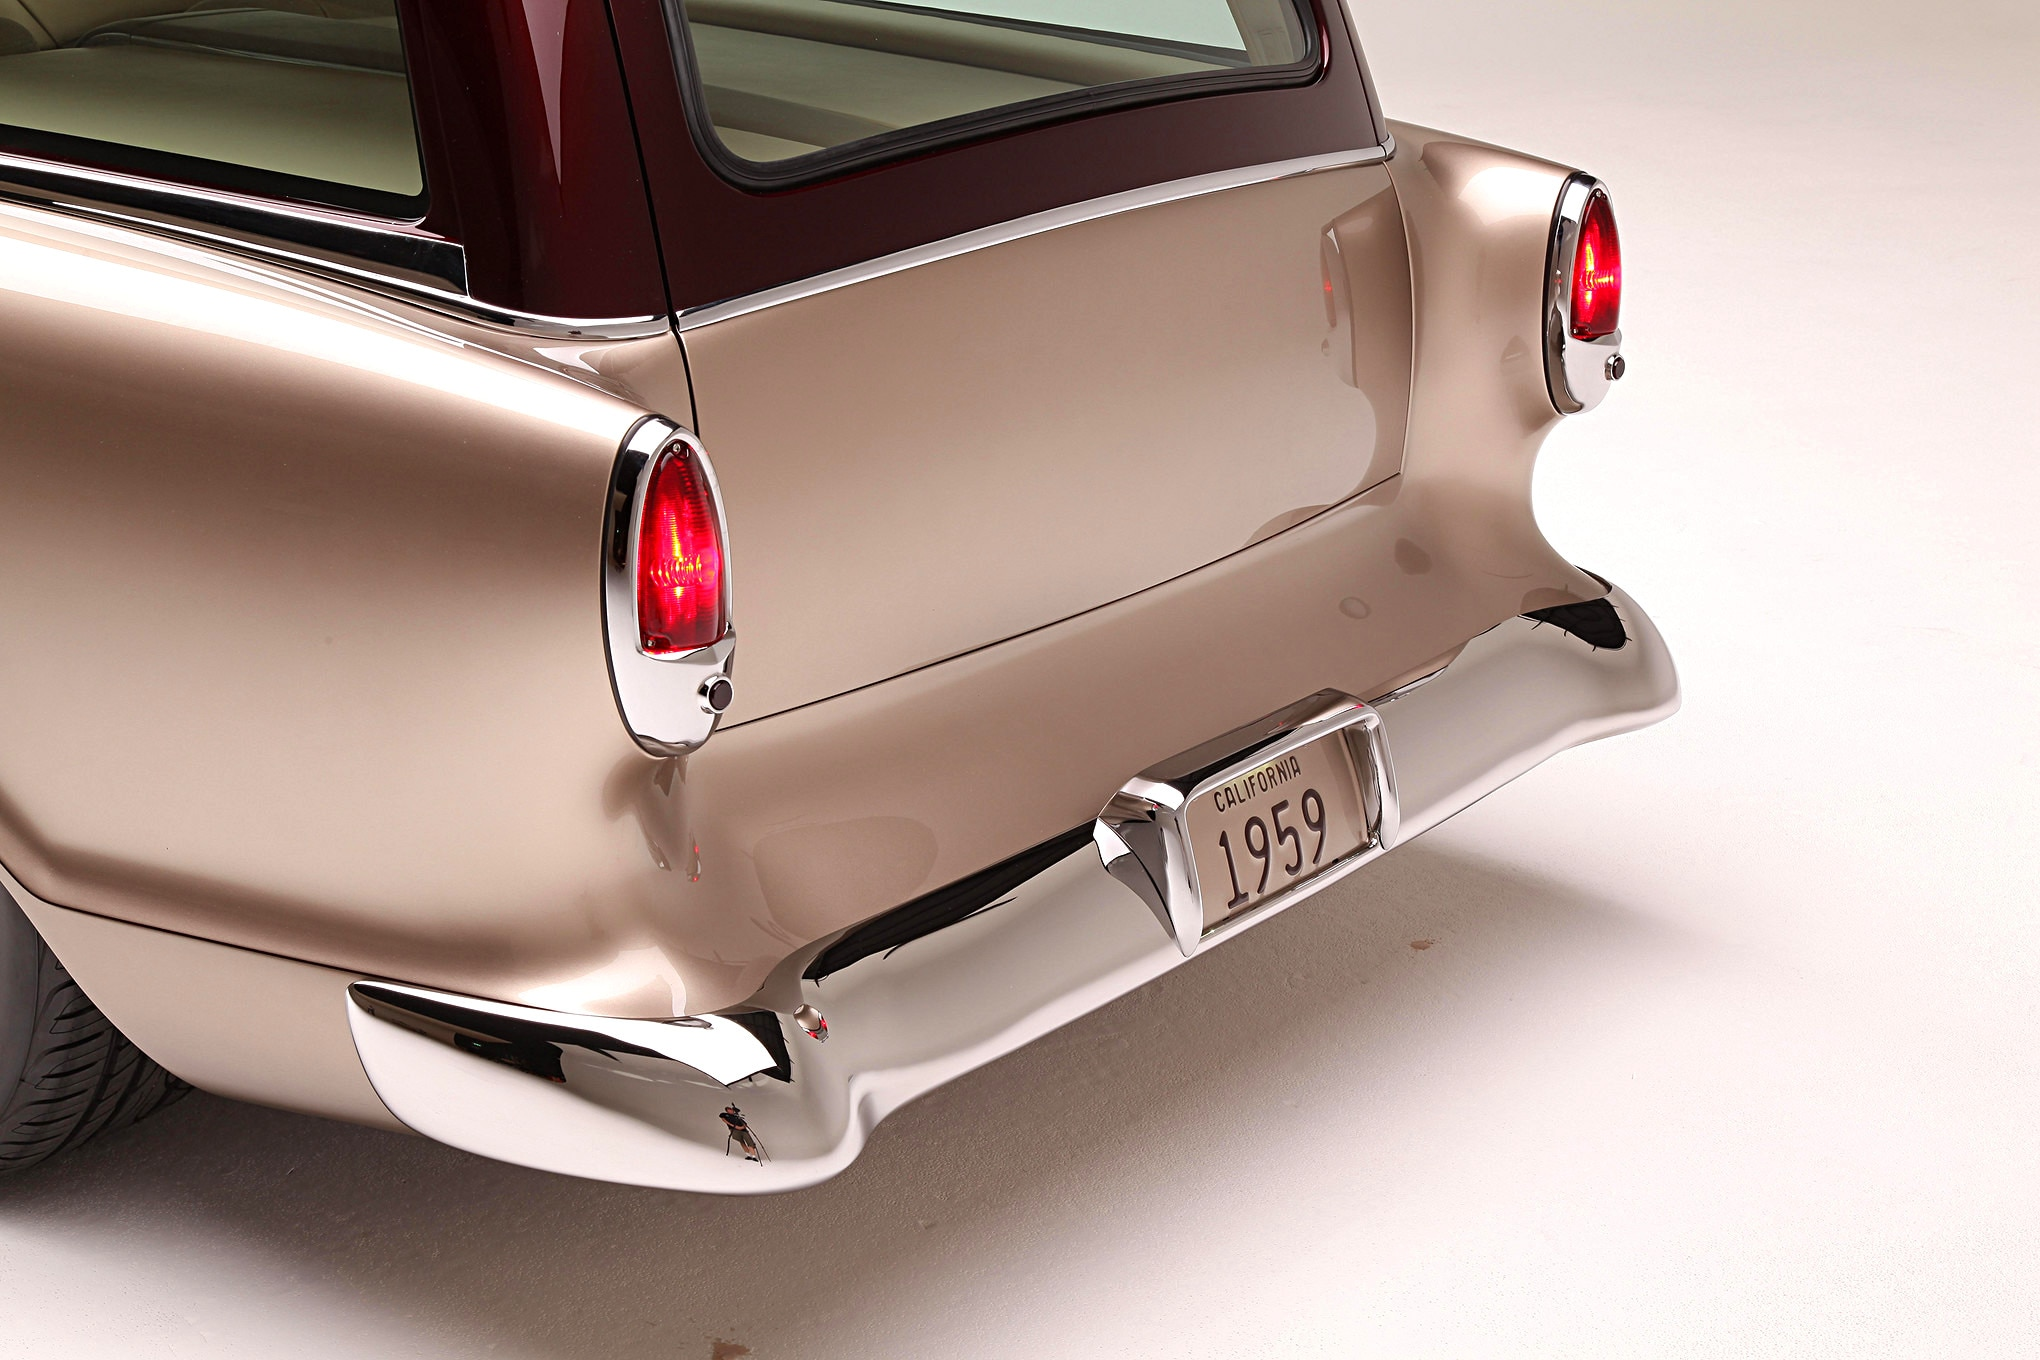 1959-rambler-osland-rear-end